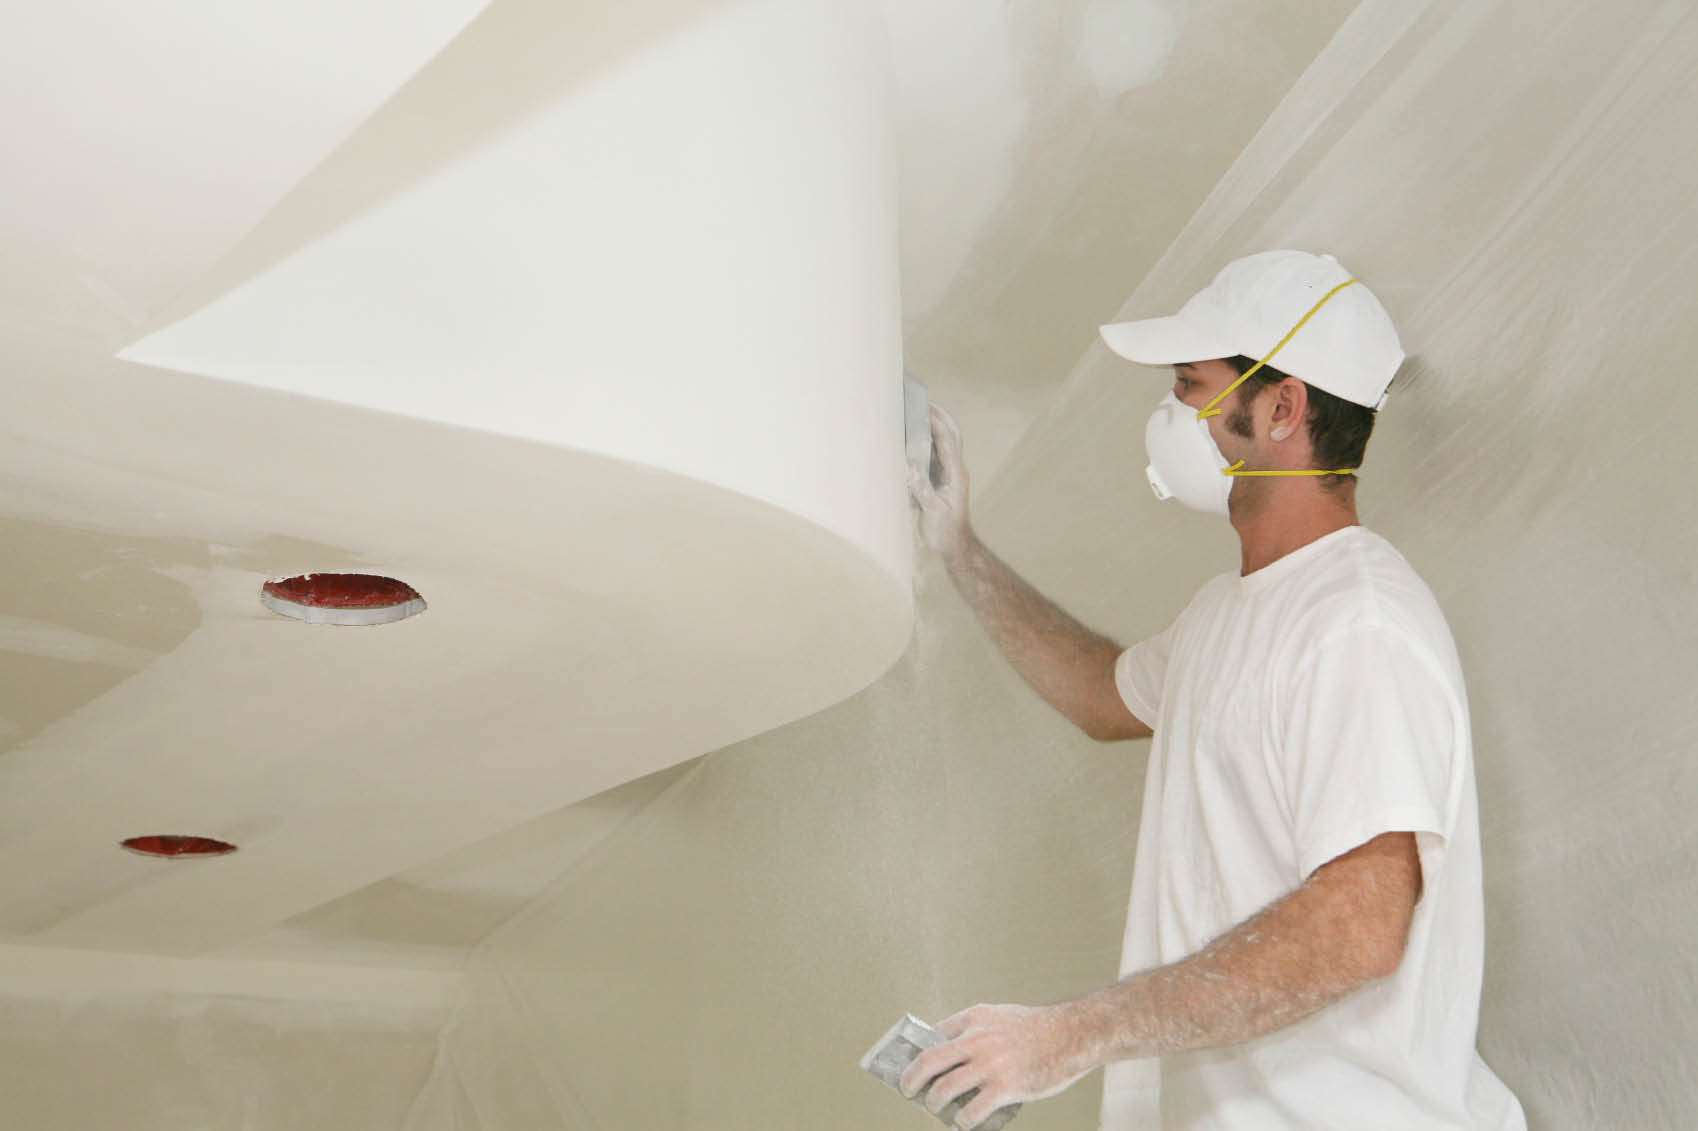 Drywall Services; all american craftsman llc services baltimore and washington dc metro areas